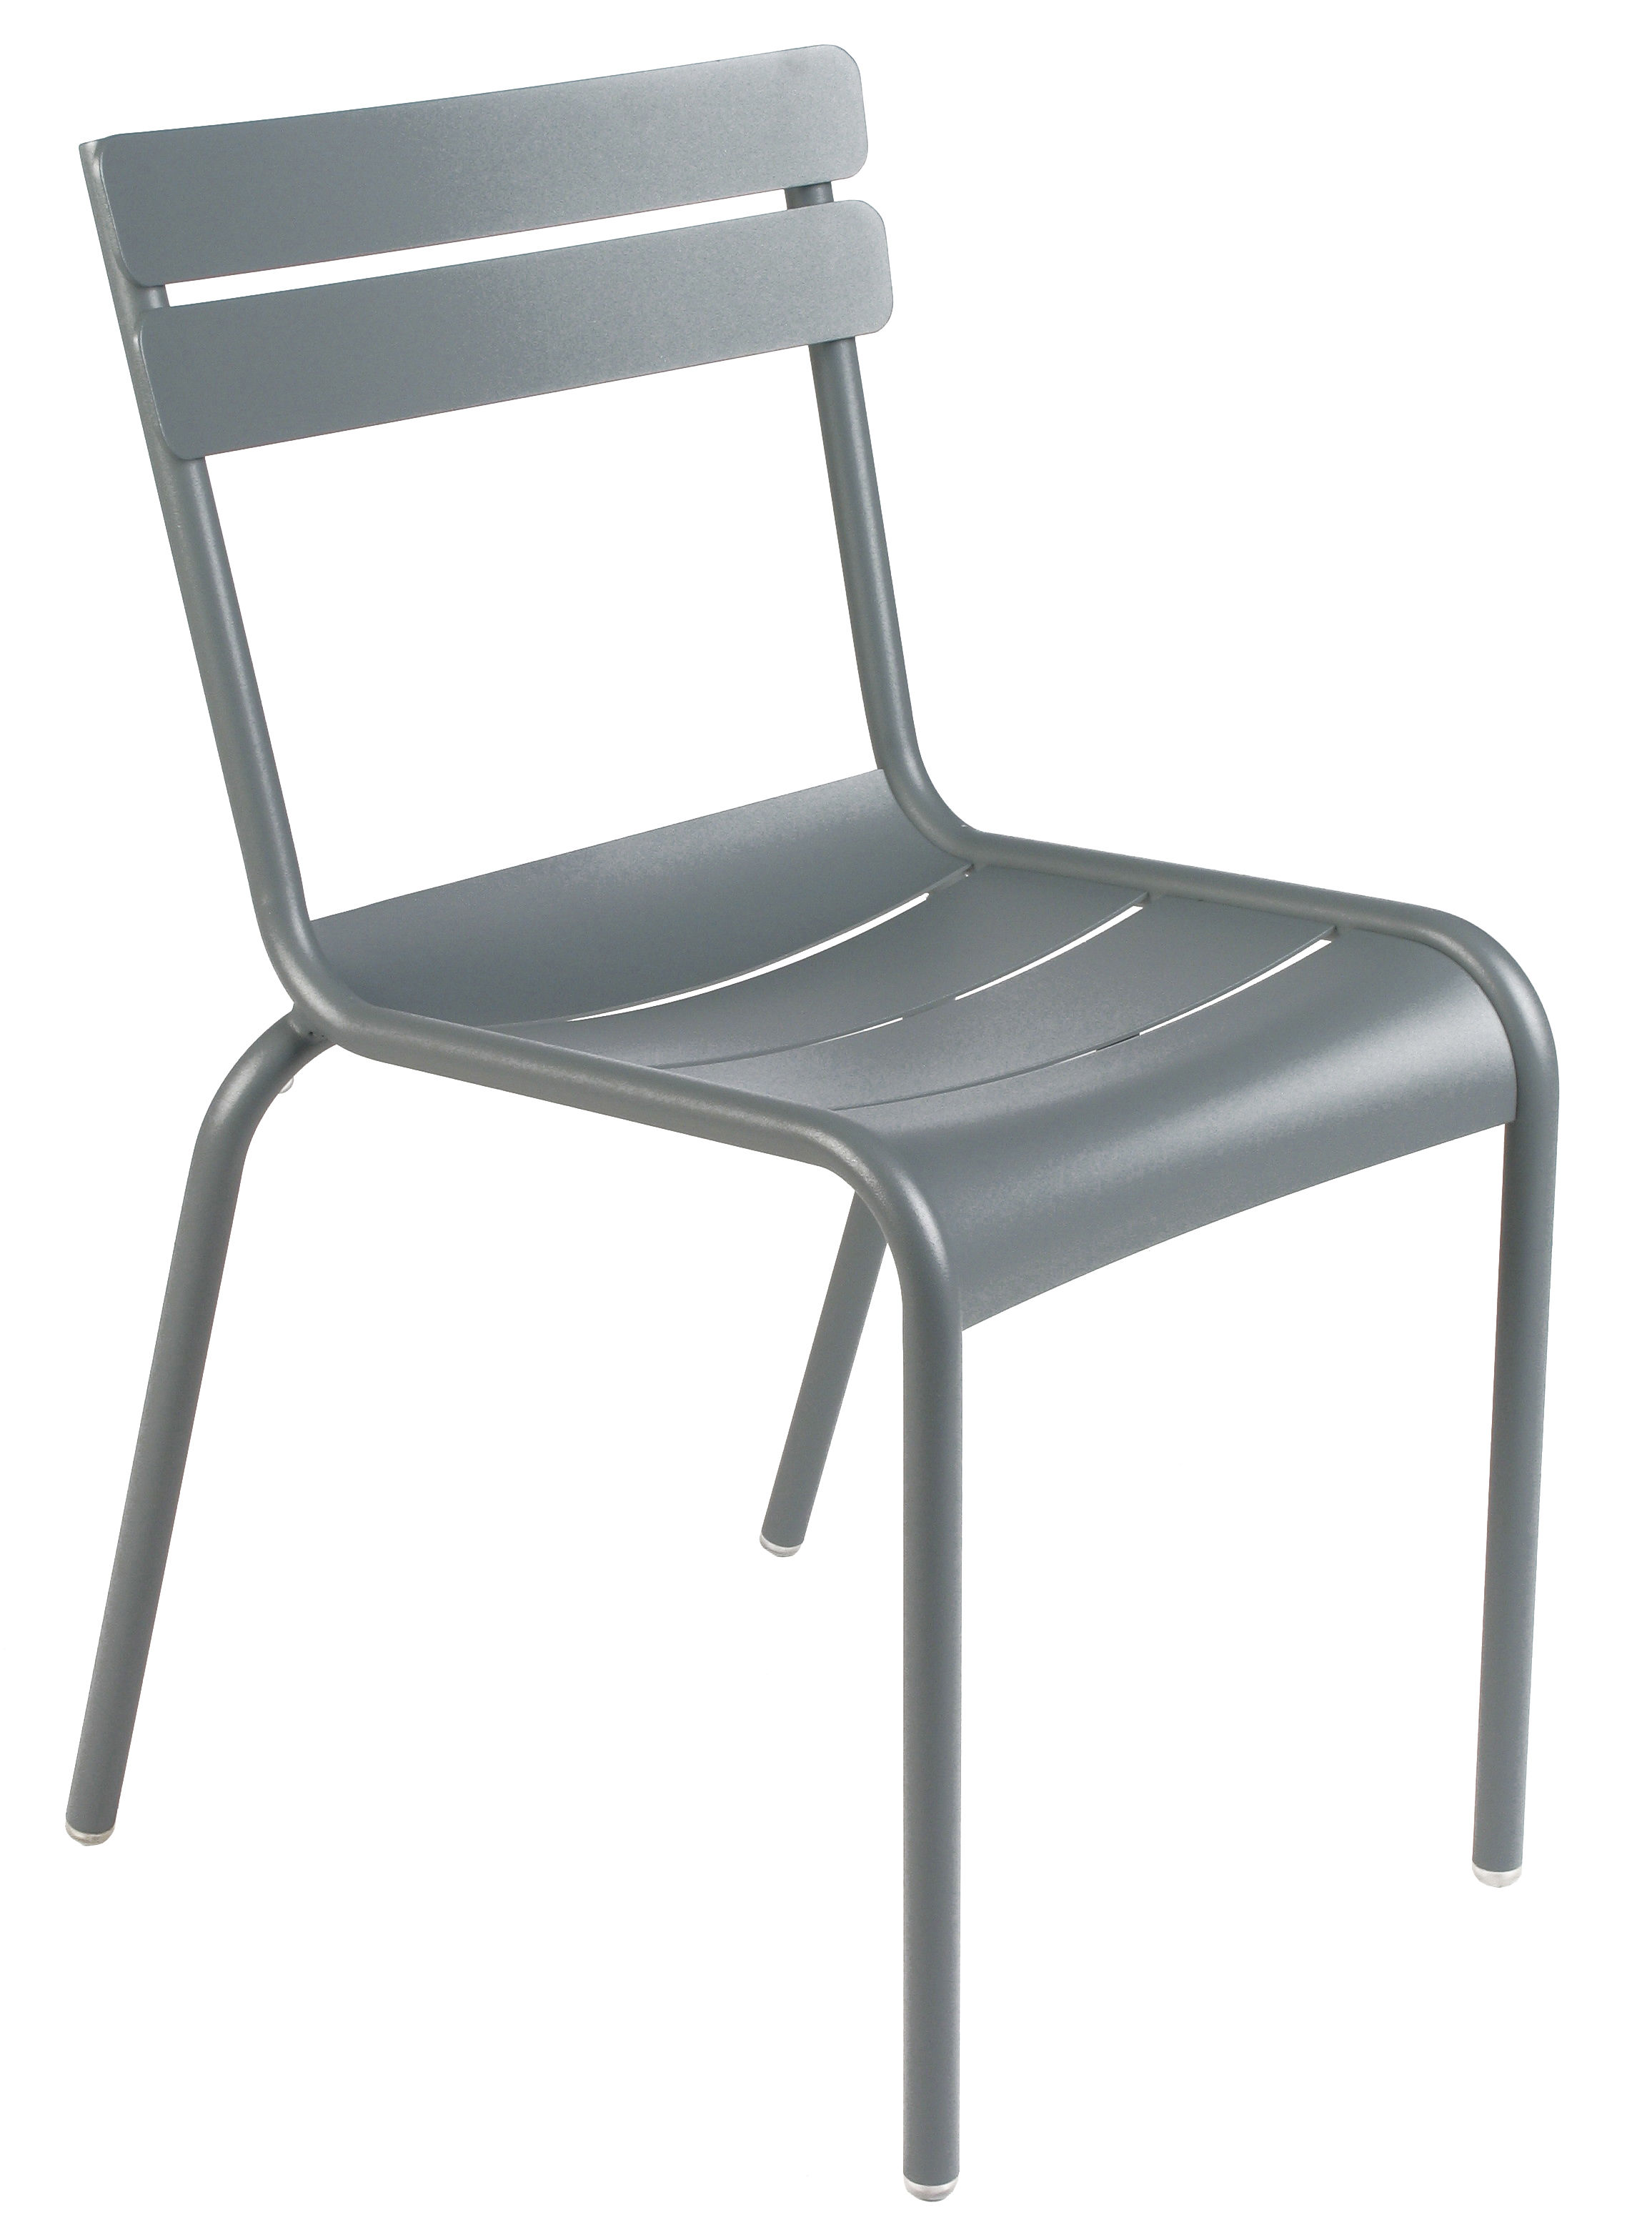 Chaise empilable luxembourg aluminium gris orage fermob for Chaise aluminium